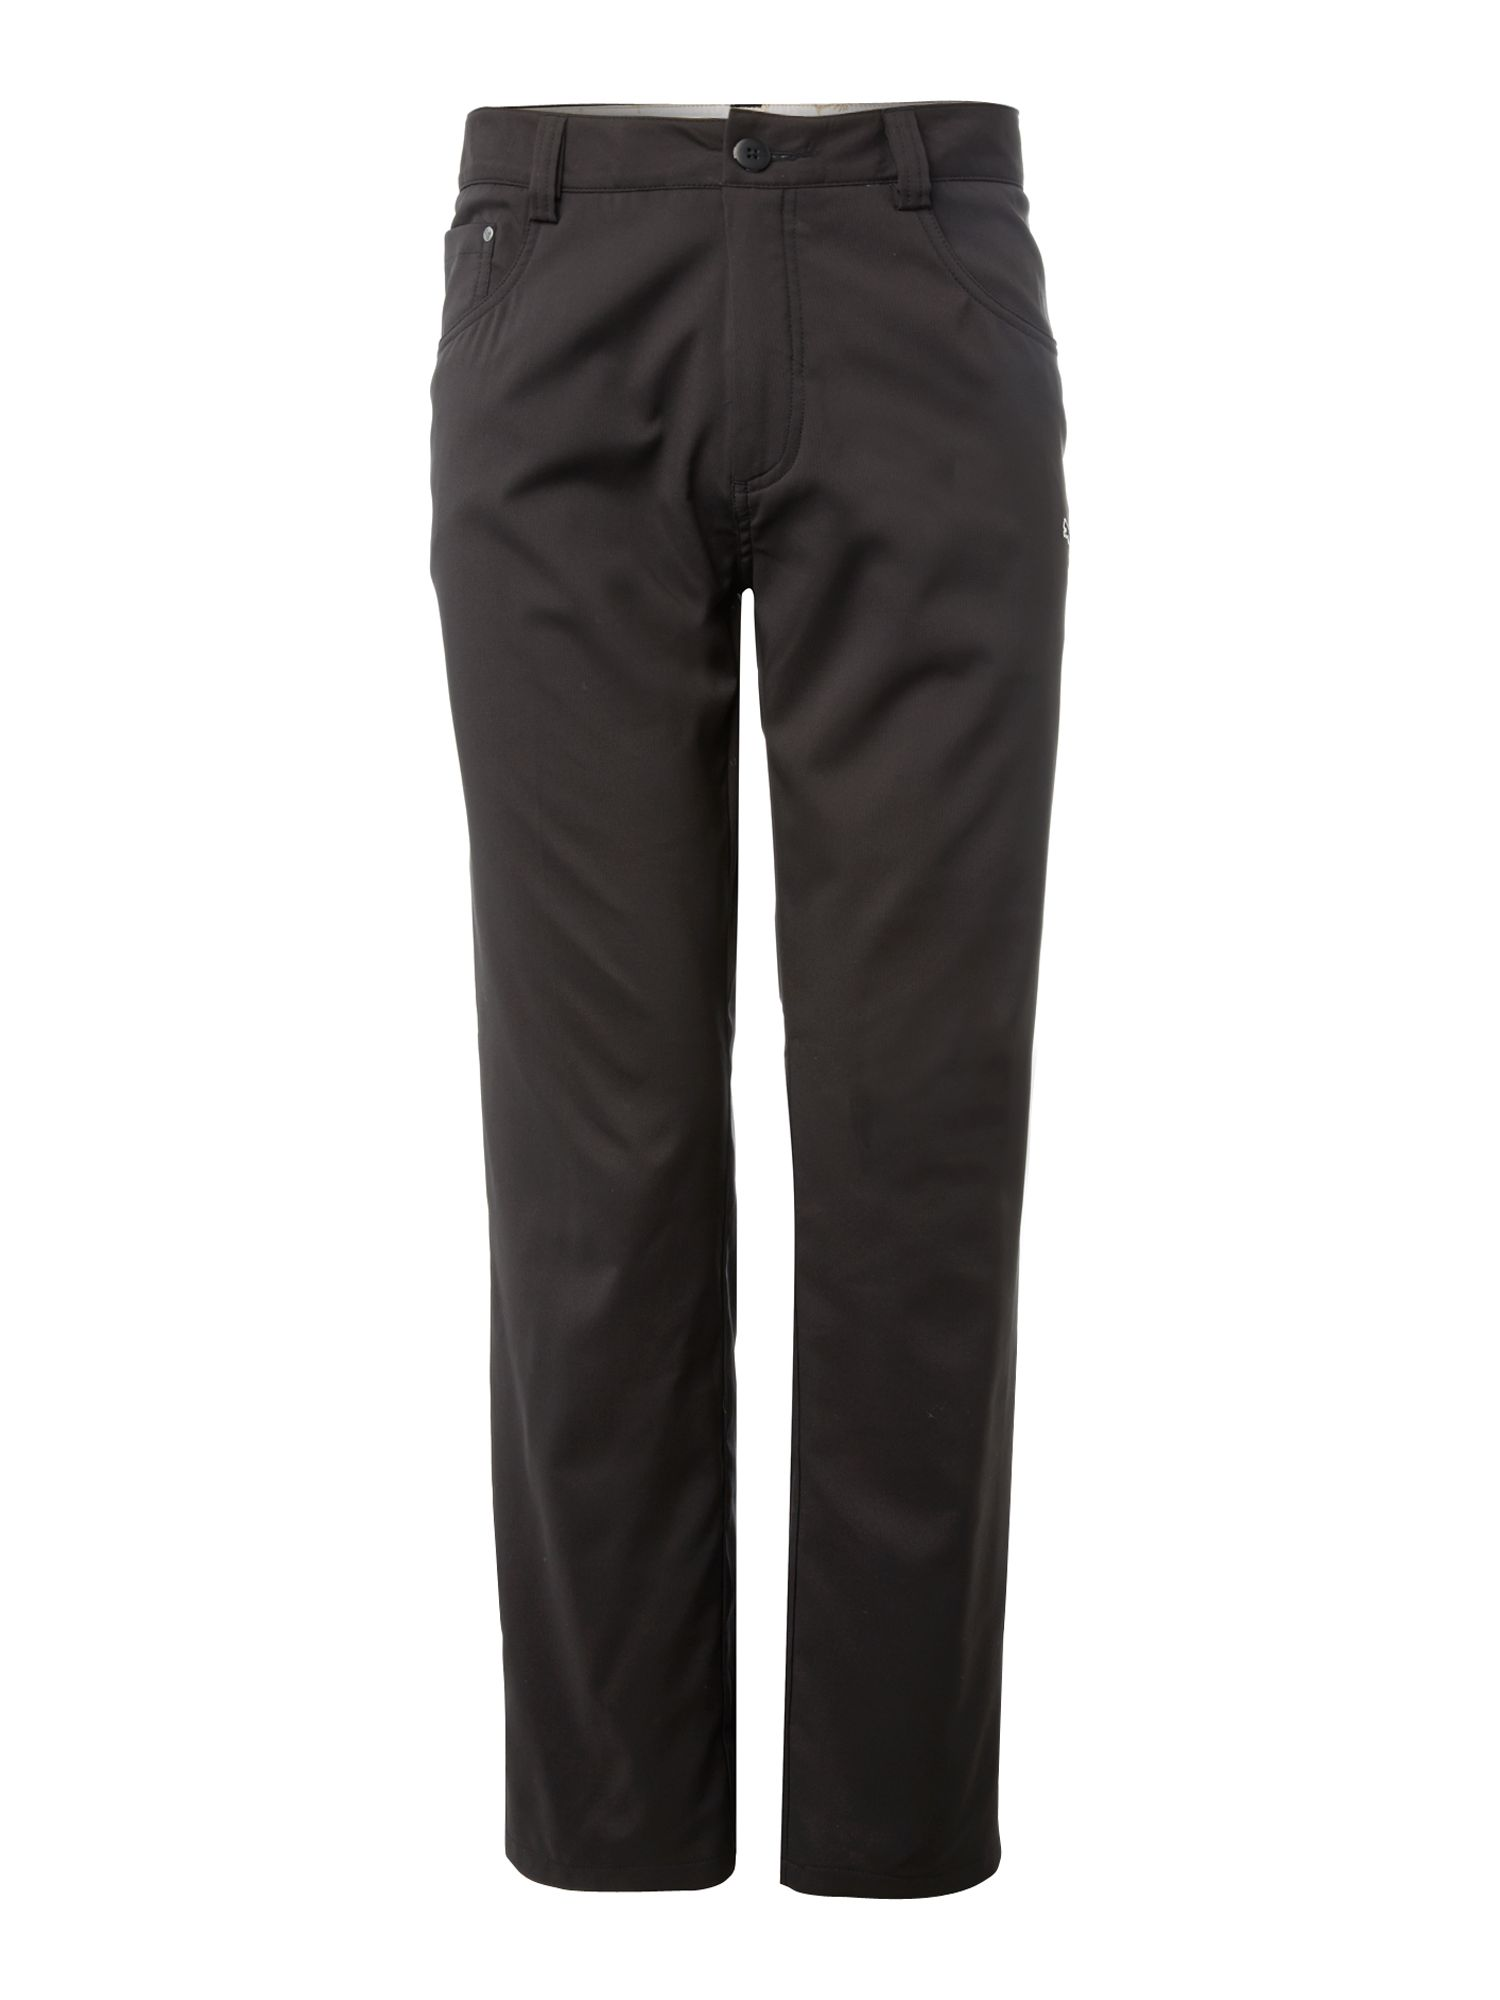 Golf 5 pocket tech pant